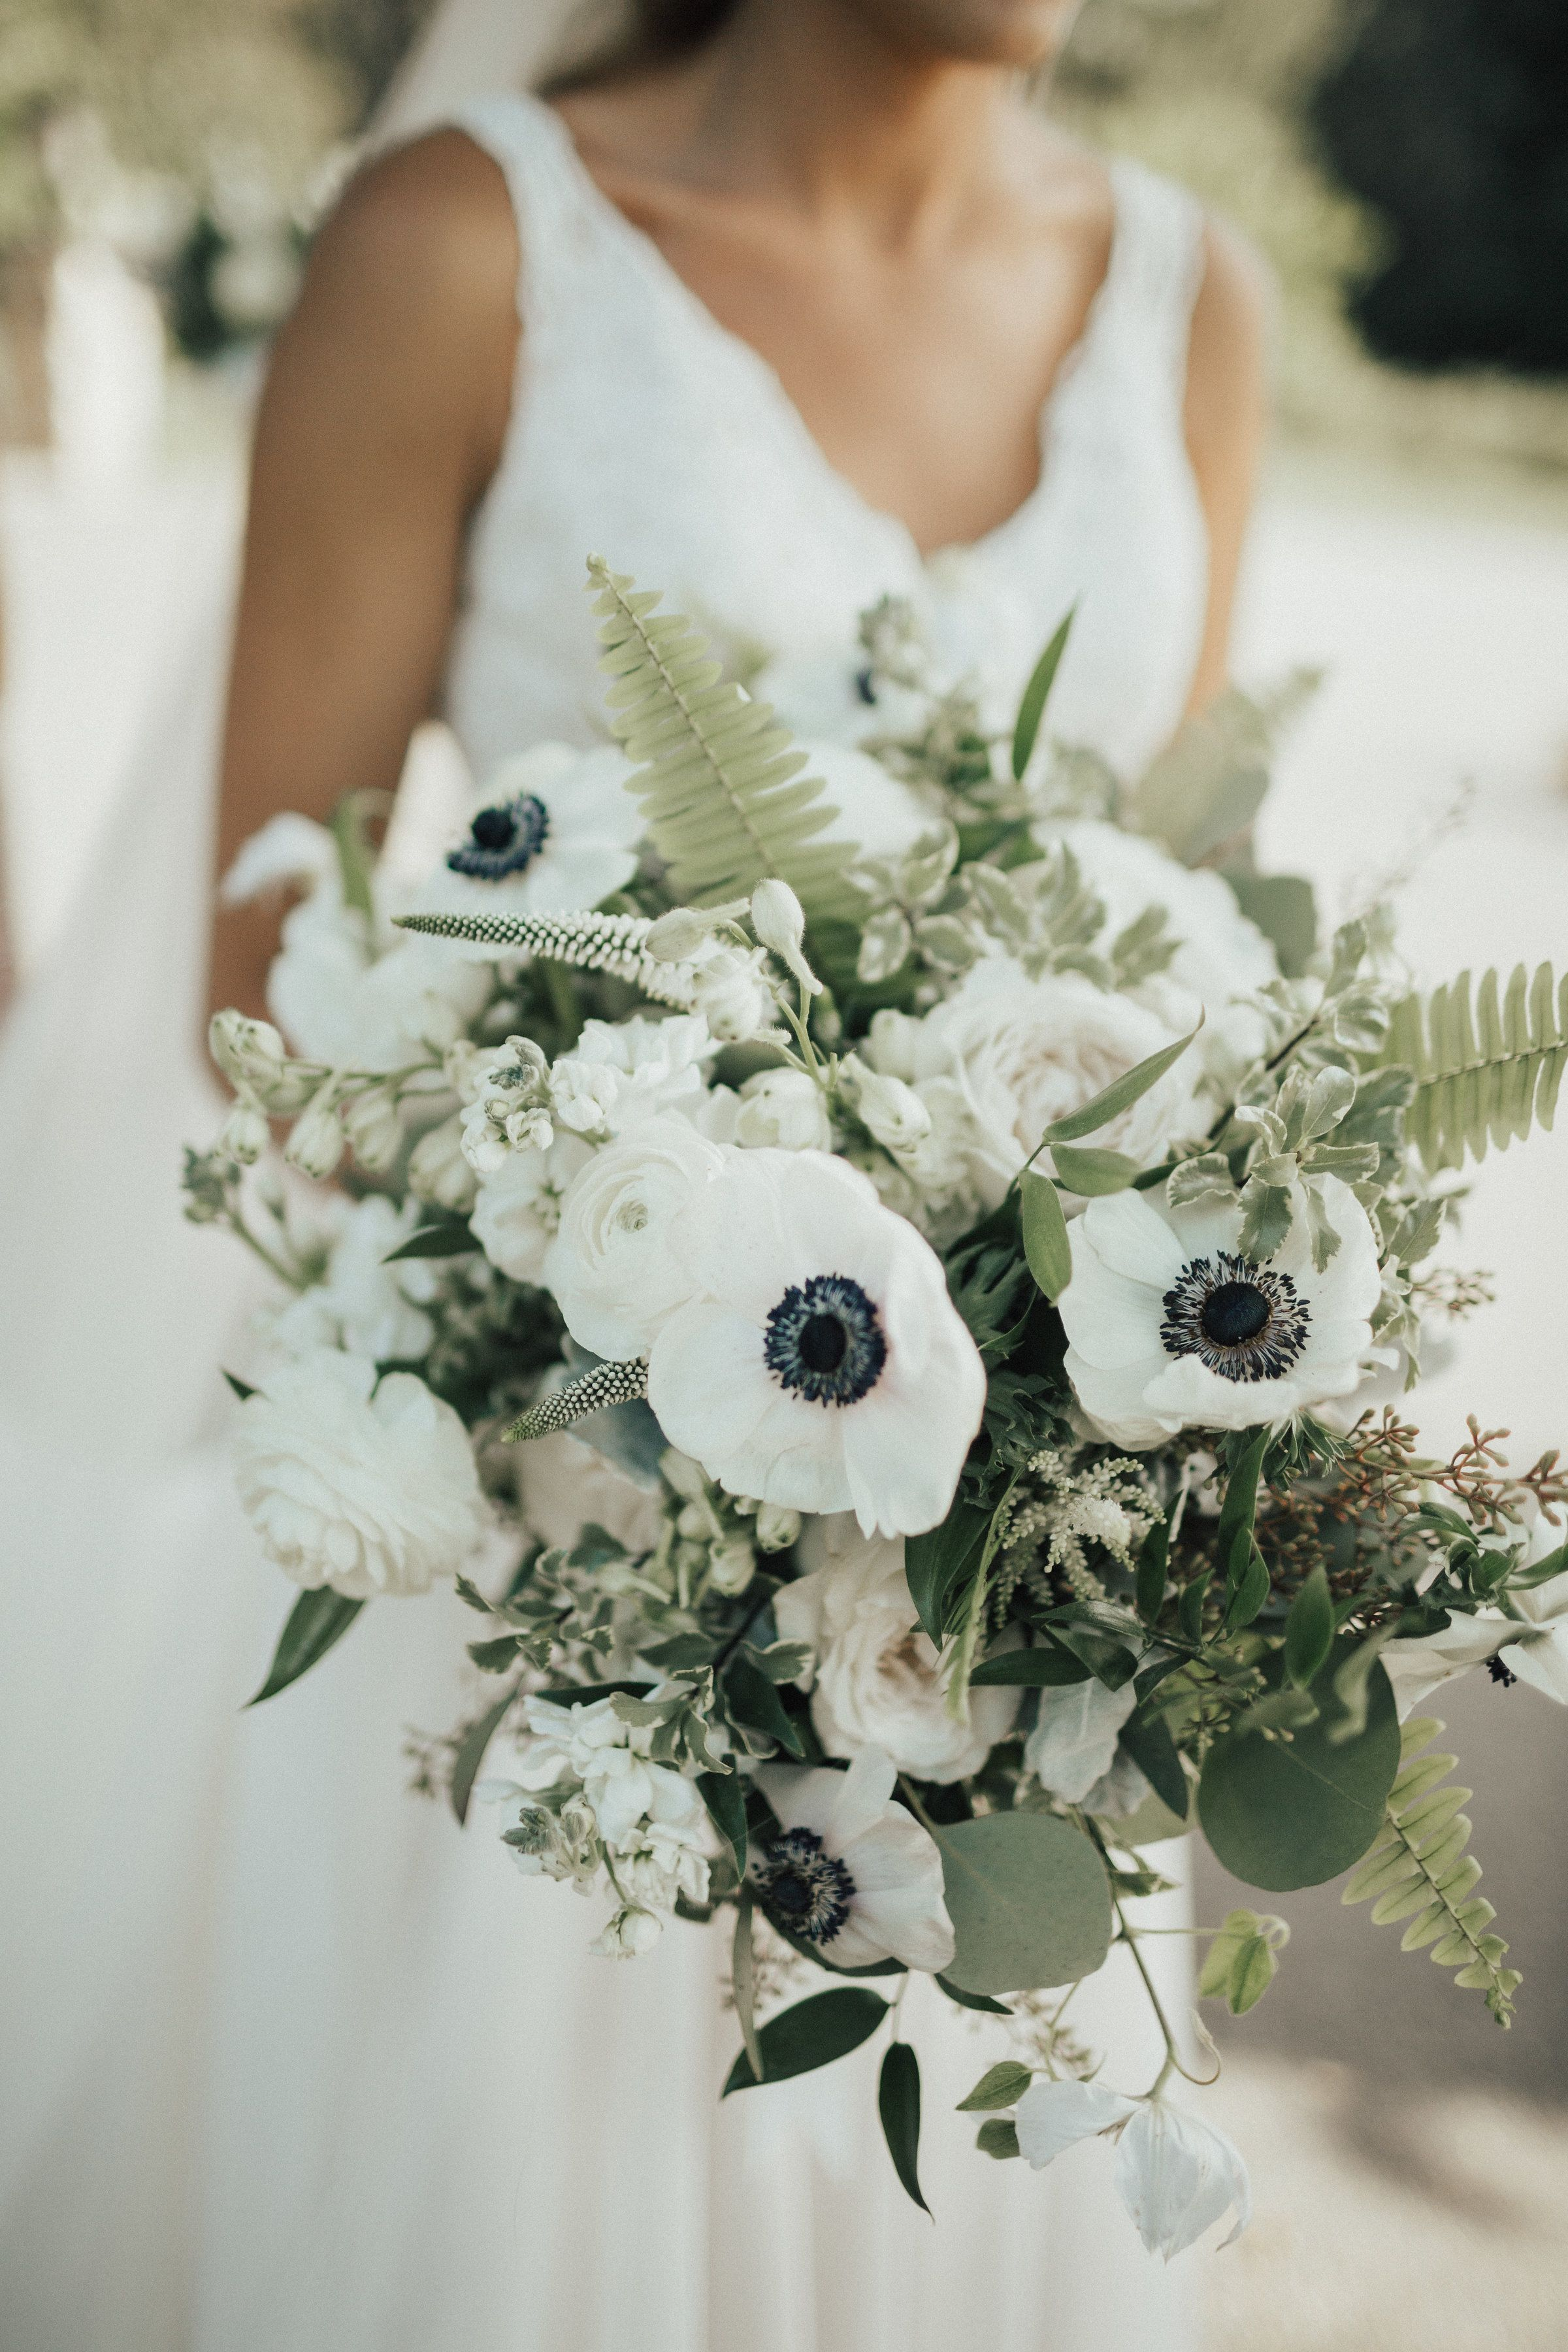 Beautiful White And Green Floral Bouquet Black And White Anemones Roses Ferns Veronica Wedding Flower Trends Anemone Bouquet Wedding Veronica White Flower